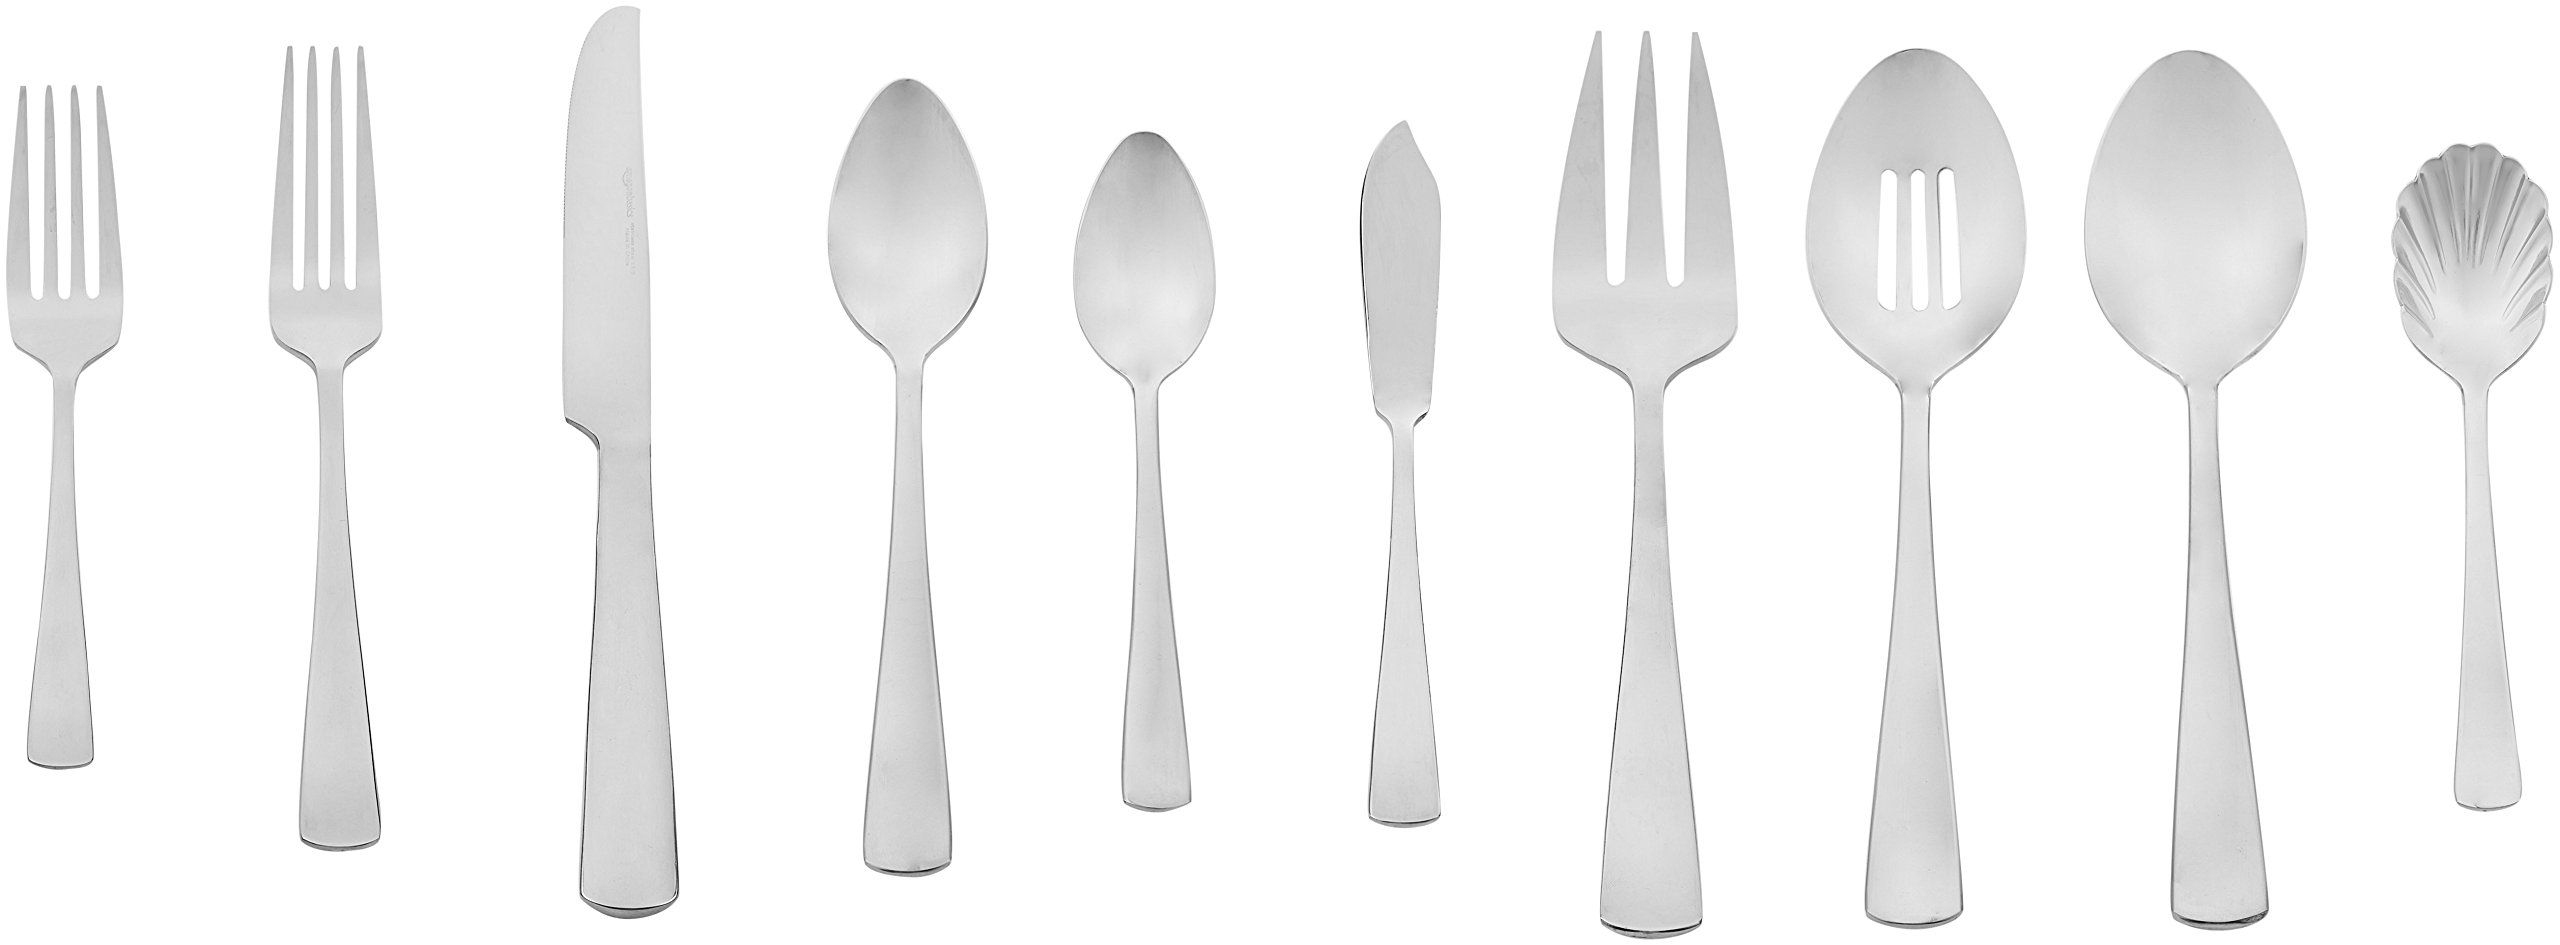 Amazon Basics 45-Piece Stainless Steel Flatware Set with Square Edge, Service for 8